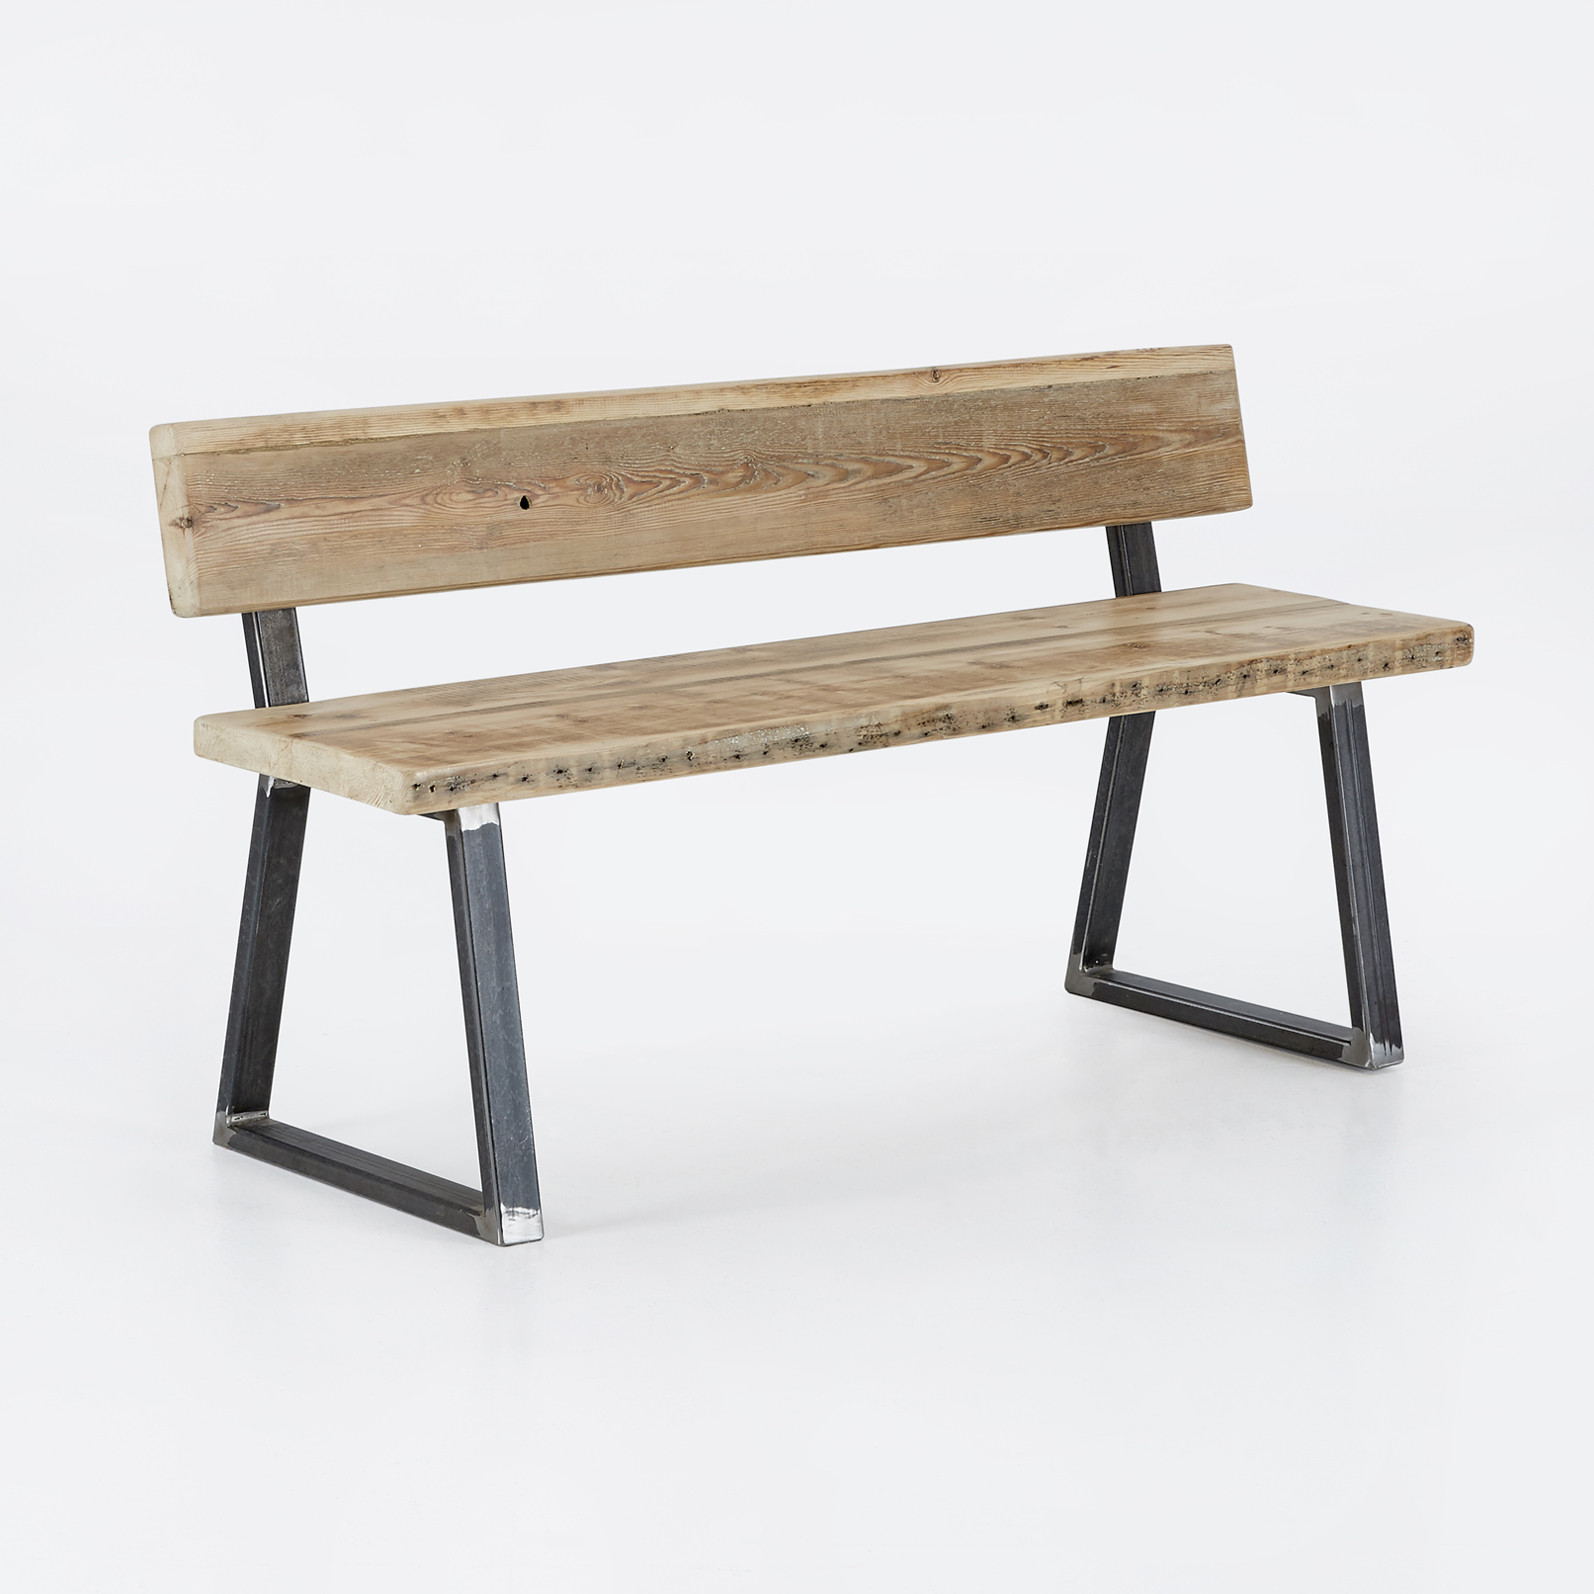 Matching bench with back – Triangle